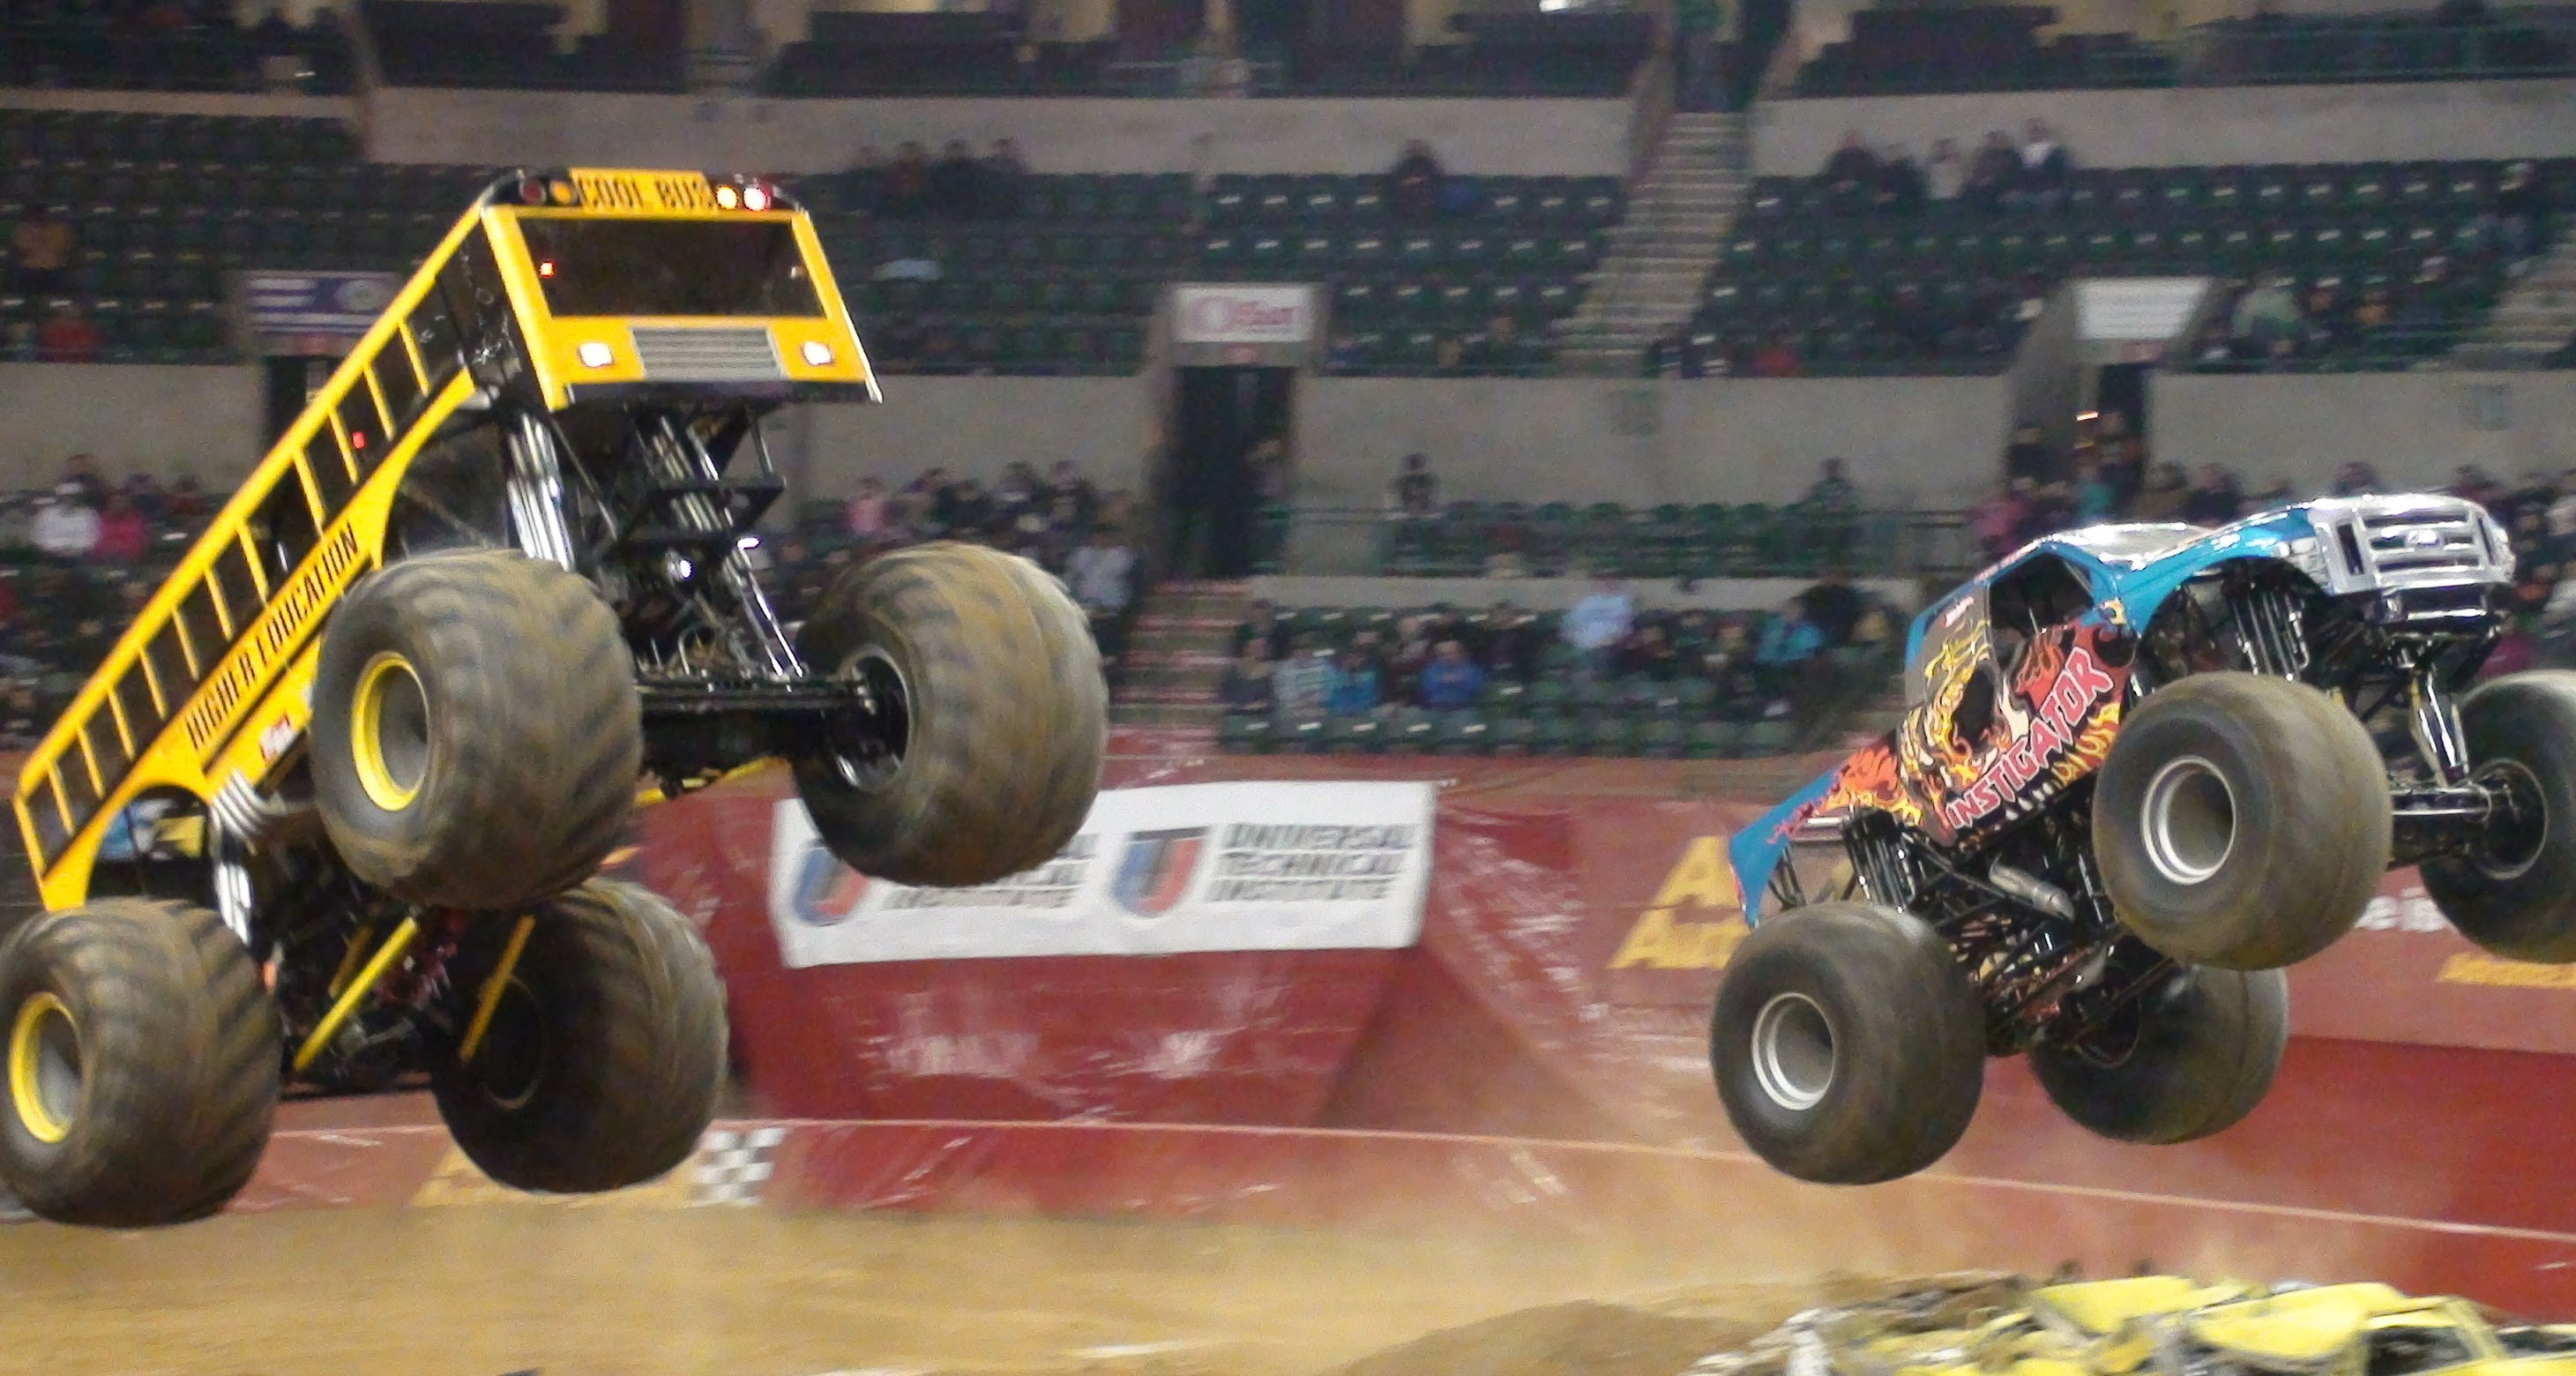 Watch The Higher Education Instigator Monster Trucks Go Wild At The Monster Jam Event